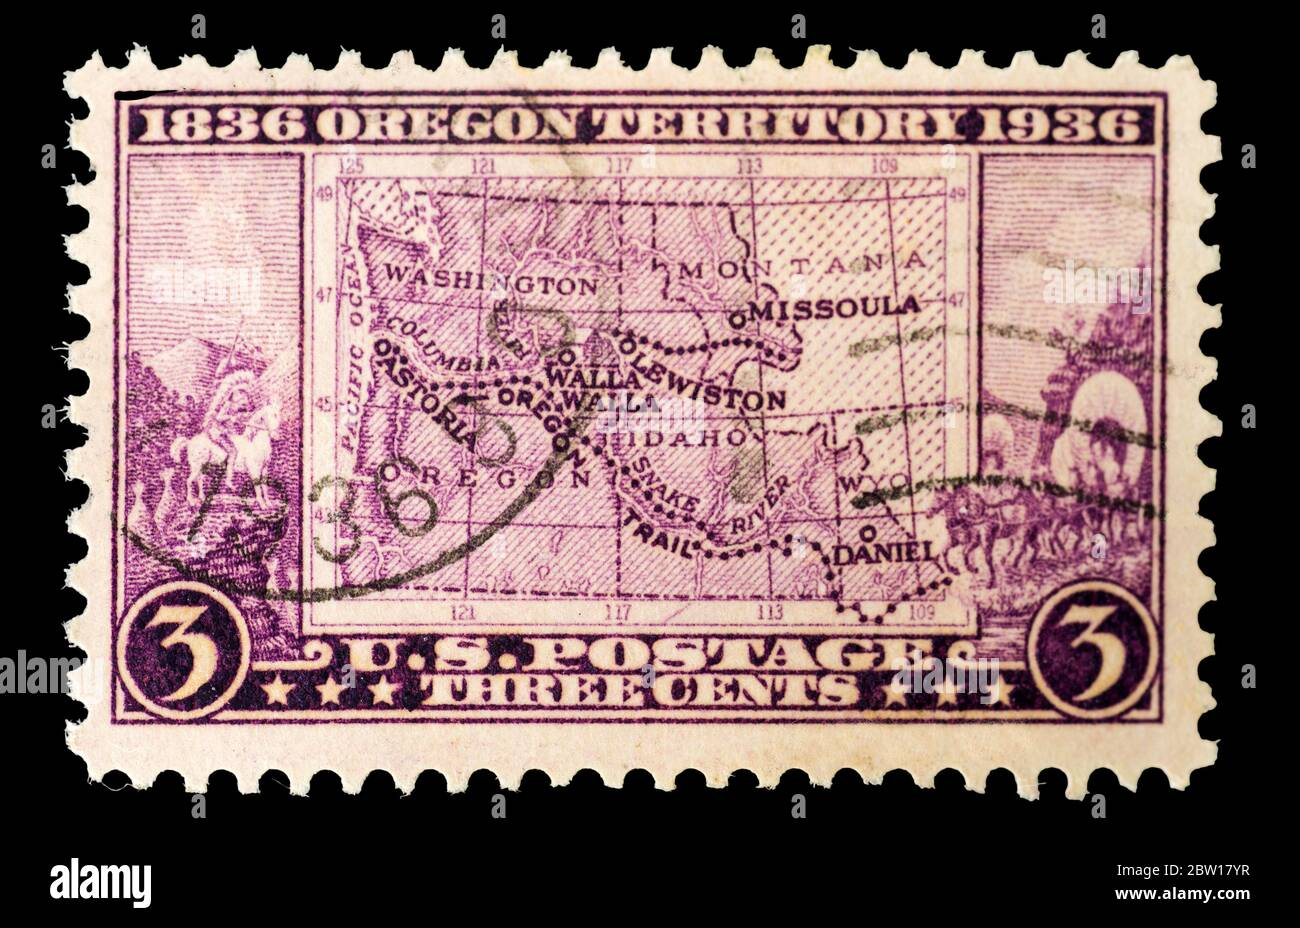 A 1936 United States Postage stamp commemorating the Centenary of the Oregon Territory. Stock Photo